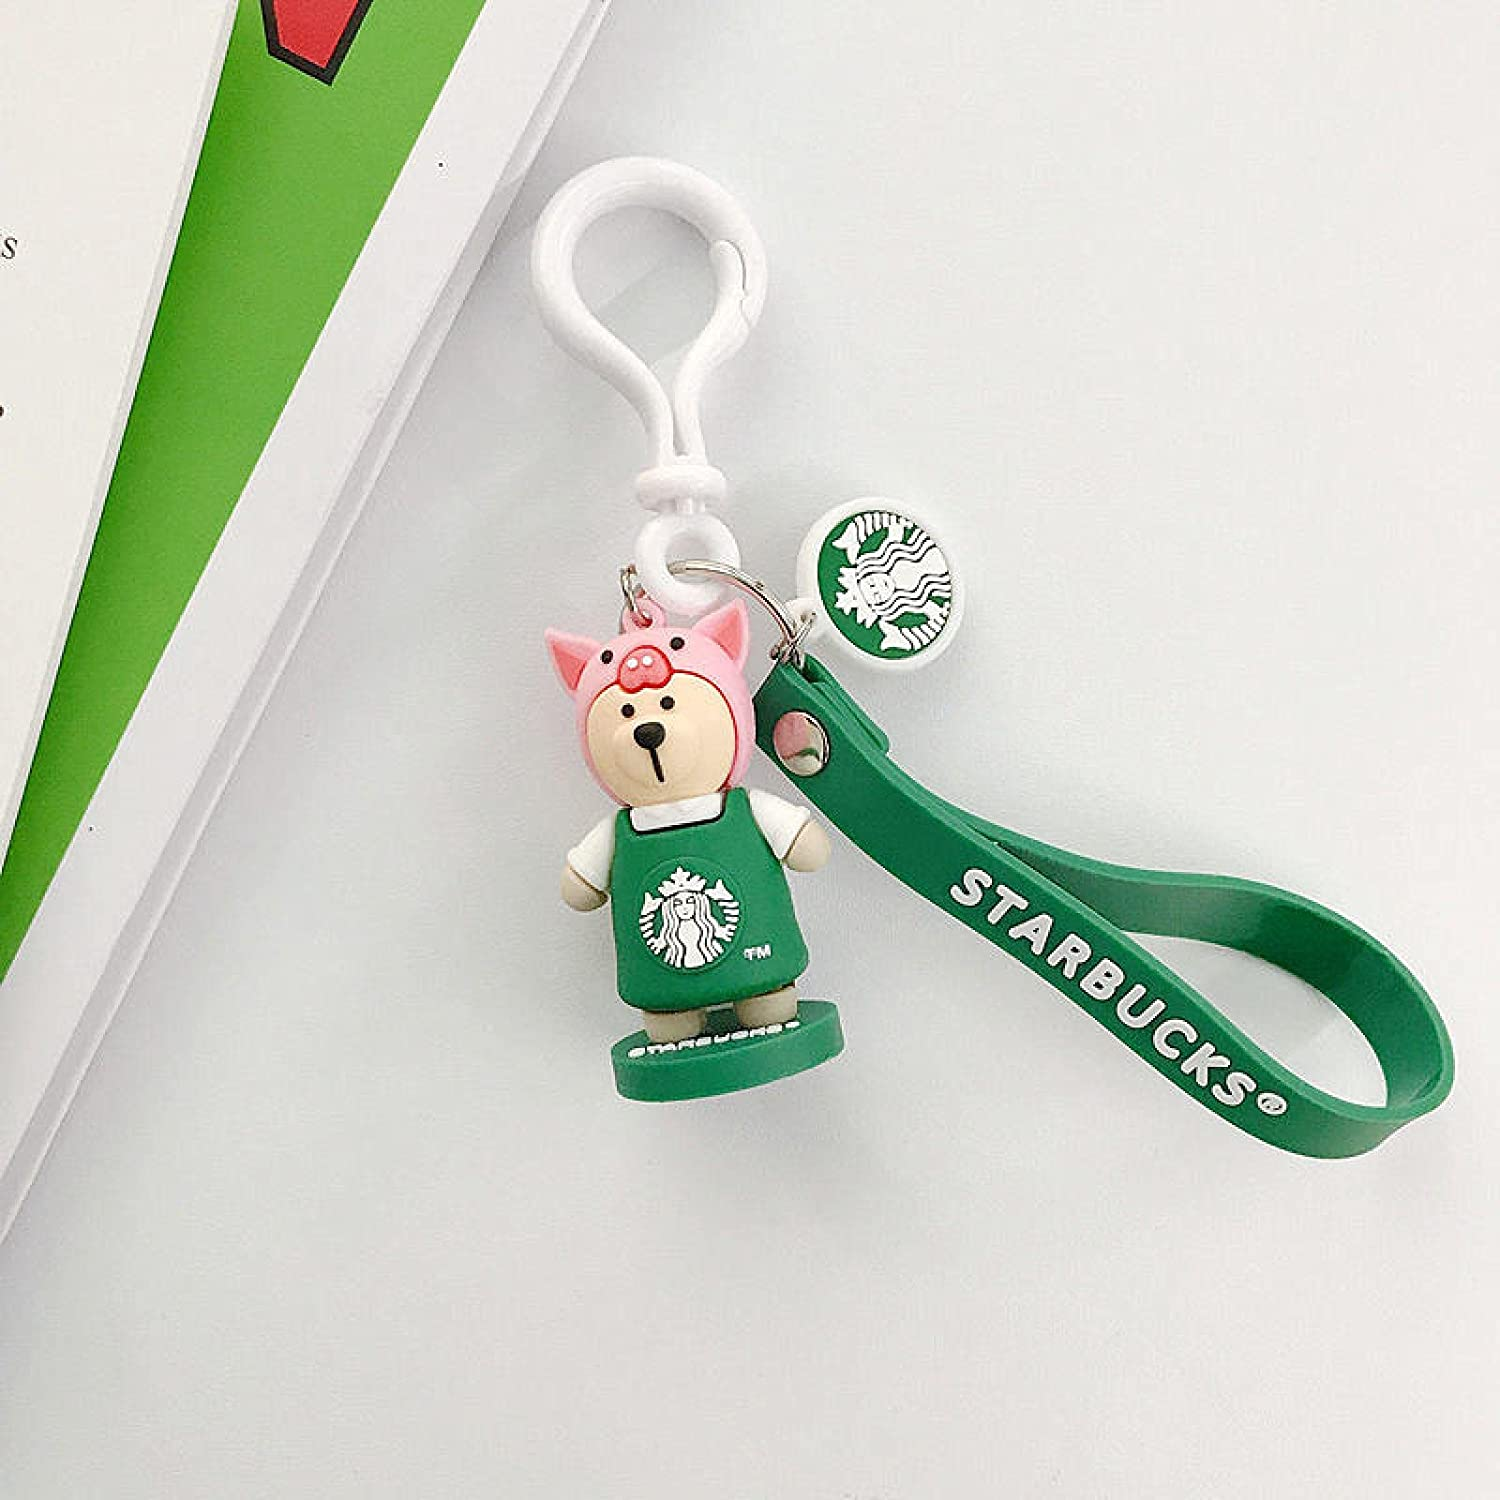 SZLGPJ Bear Zodiac Character Doll ! Super beauty product restock quality top! Car Keychain Bag Couple Popular shop is the lowest price challenge Pendan